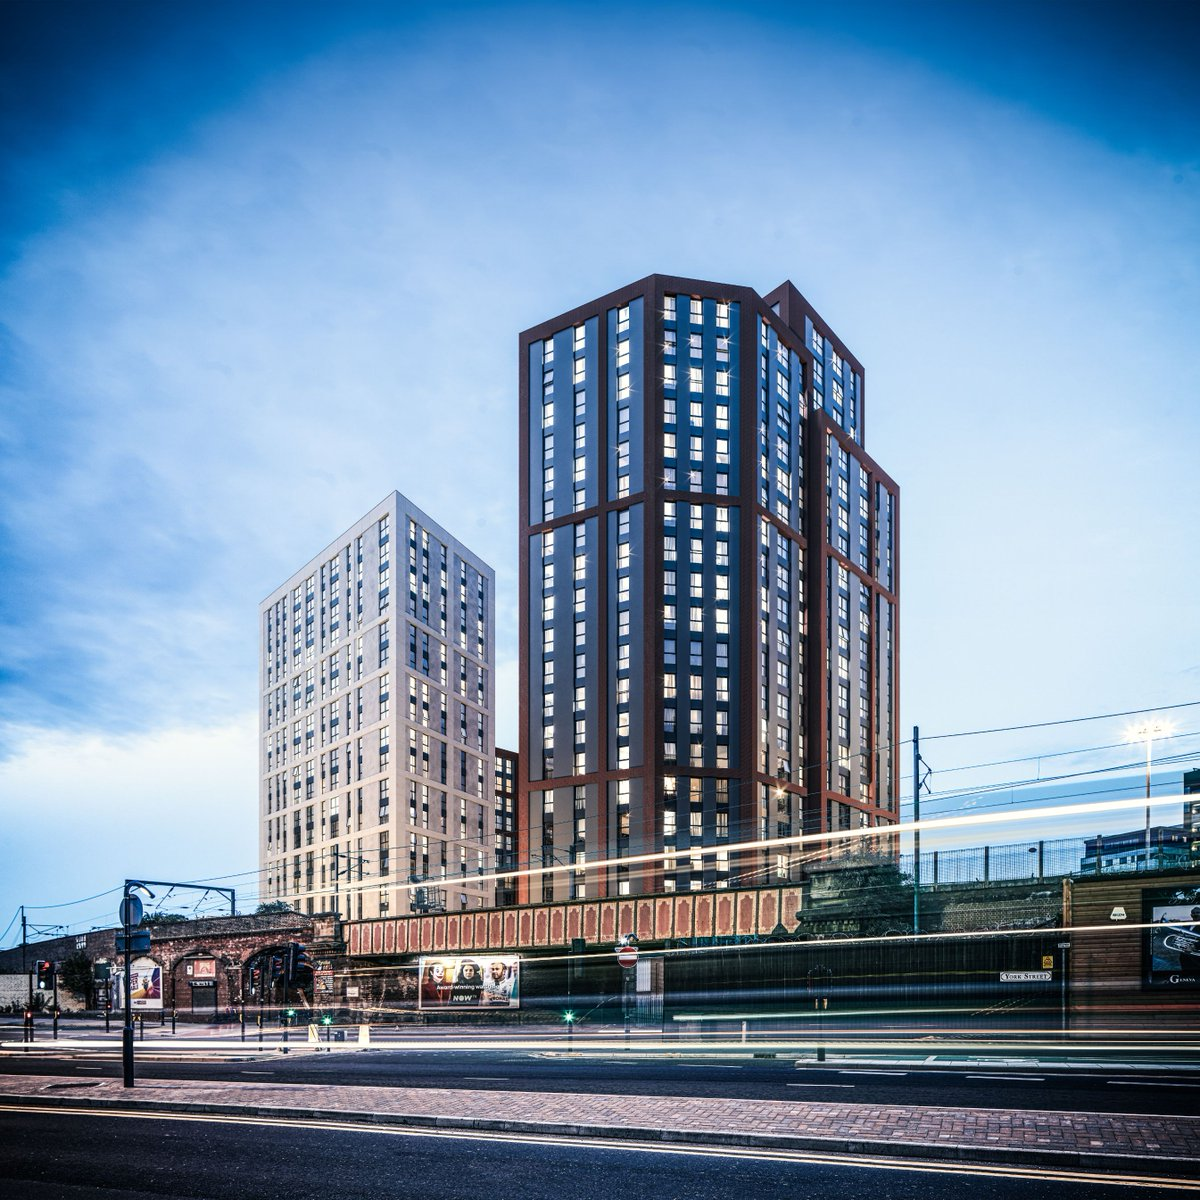 Exciting news and we're happy to be working on this brilliant development with @BriggsForrester#TorsionDevelopment #LeedsDevelopment #Construction